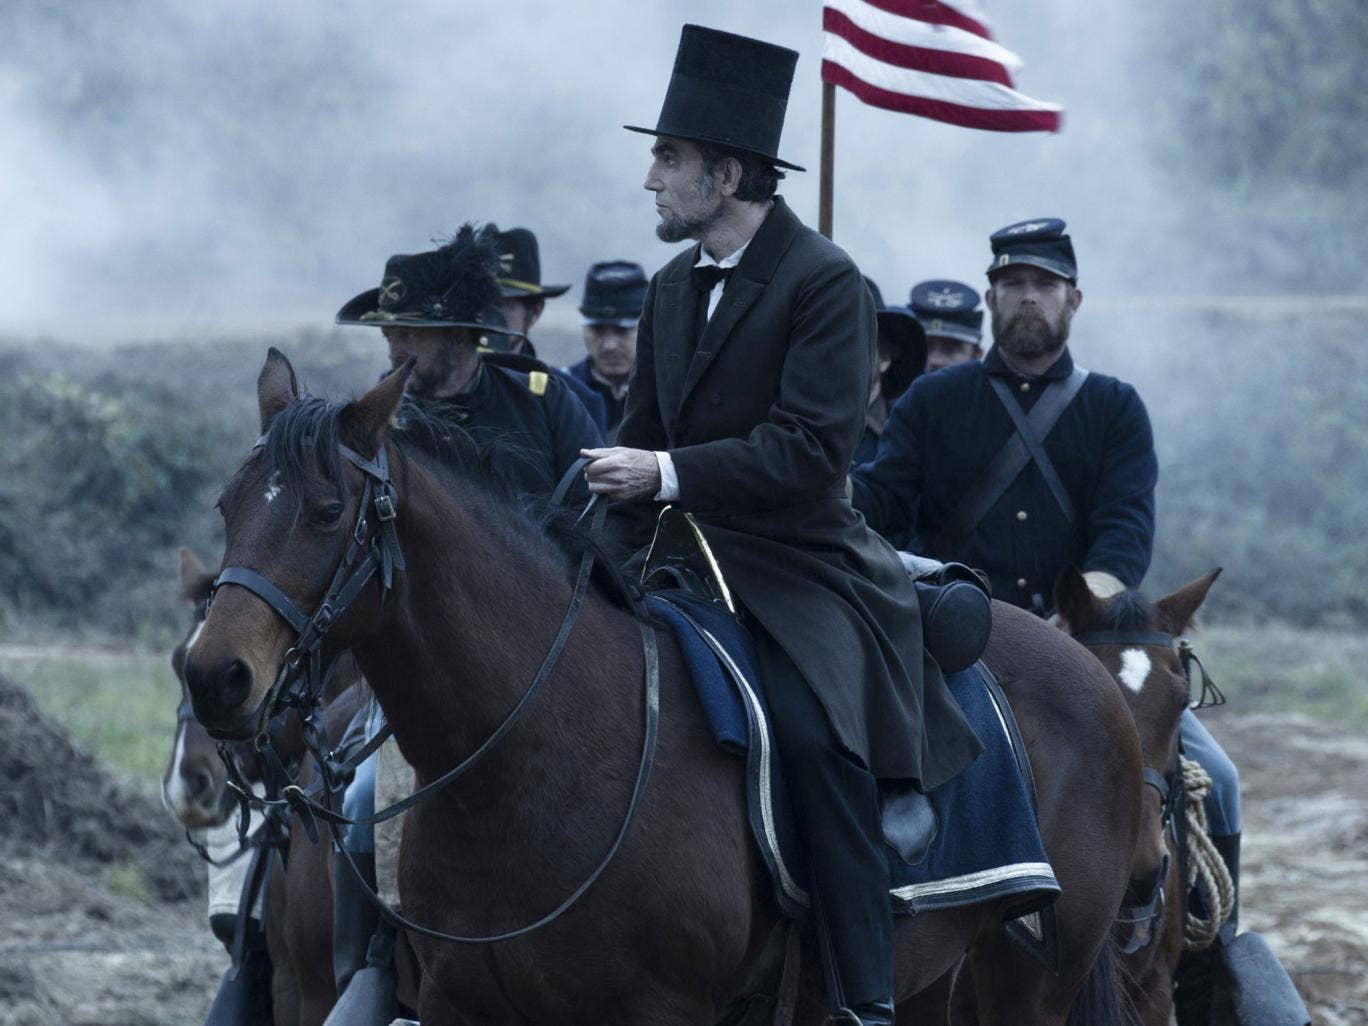 Political wiles: Daniel Day-Lewis as Lincoln, who could handle the opposition